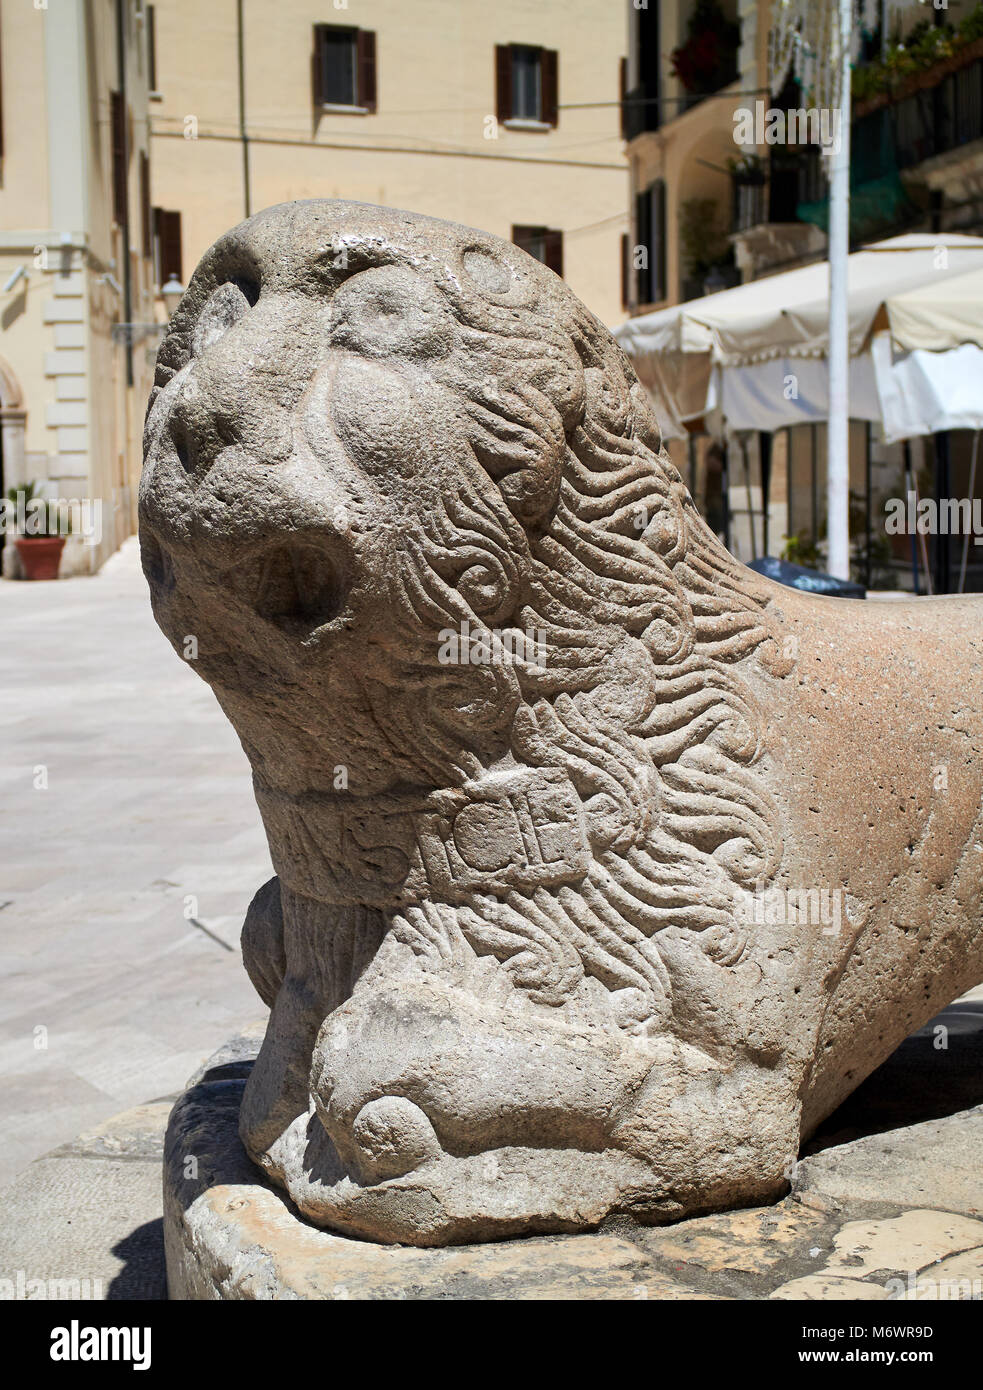 Europe, Italy, Puglia, Bari city, the old town,  Mercantile Square. Infamous Column. Marble Lion - Stock Image